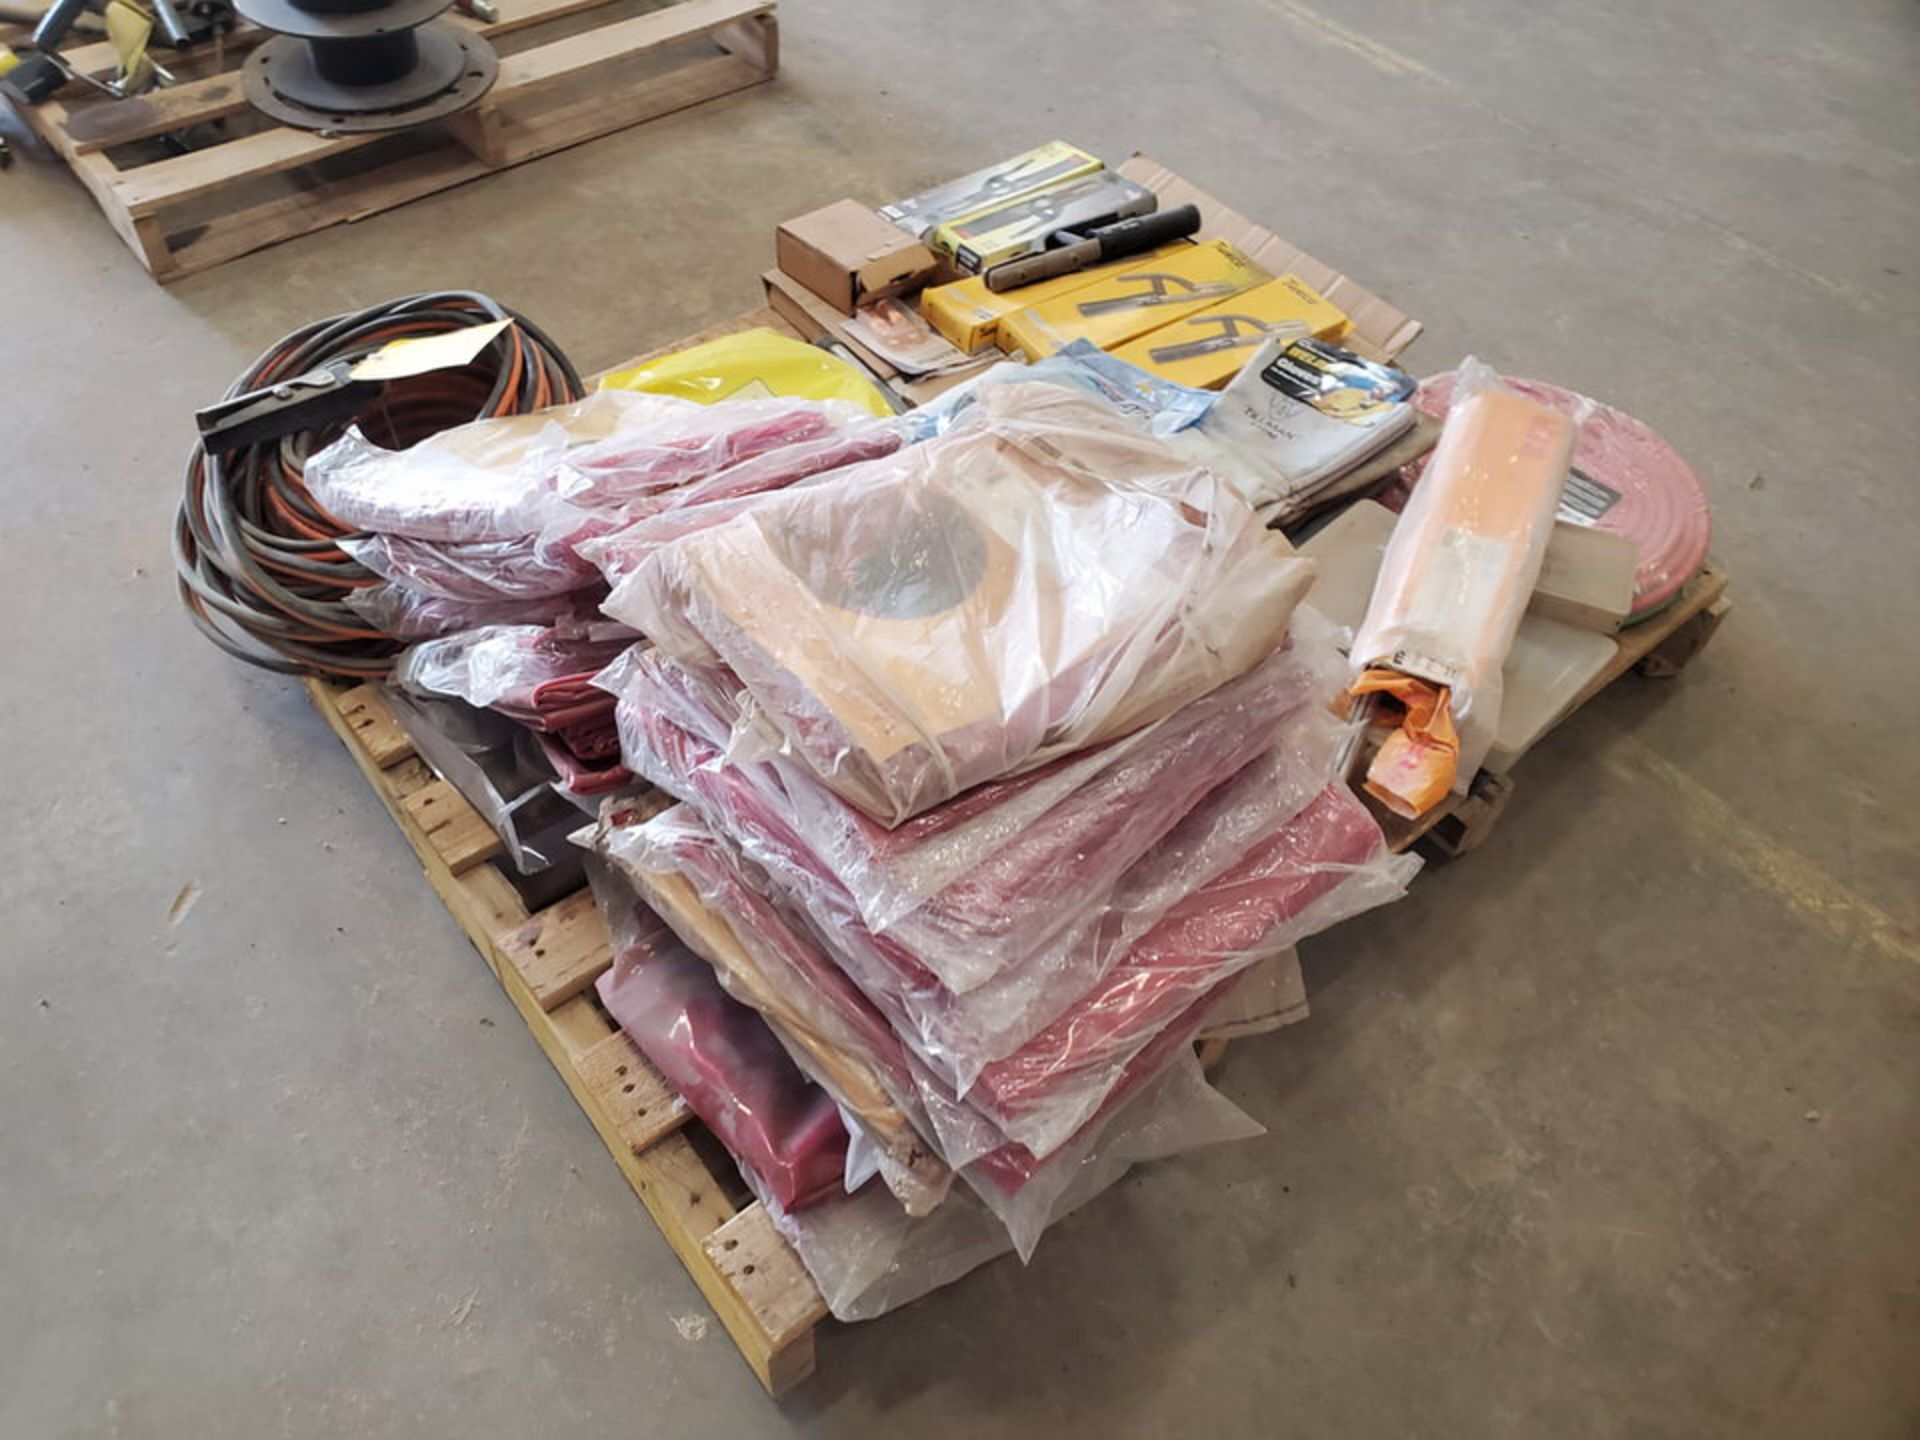 Assorted Welding Material To Include But Not Limited To: Electrode Holders, Gloves, Hoses, Rods, - Image 3 of 12